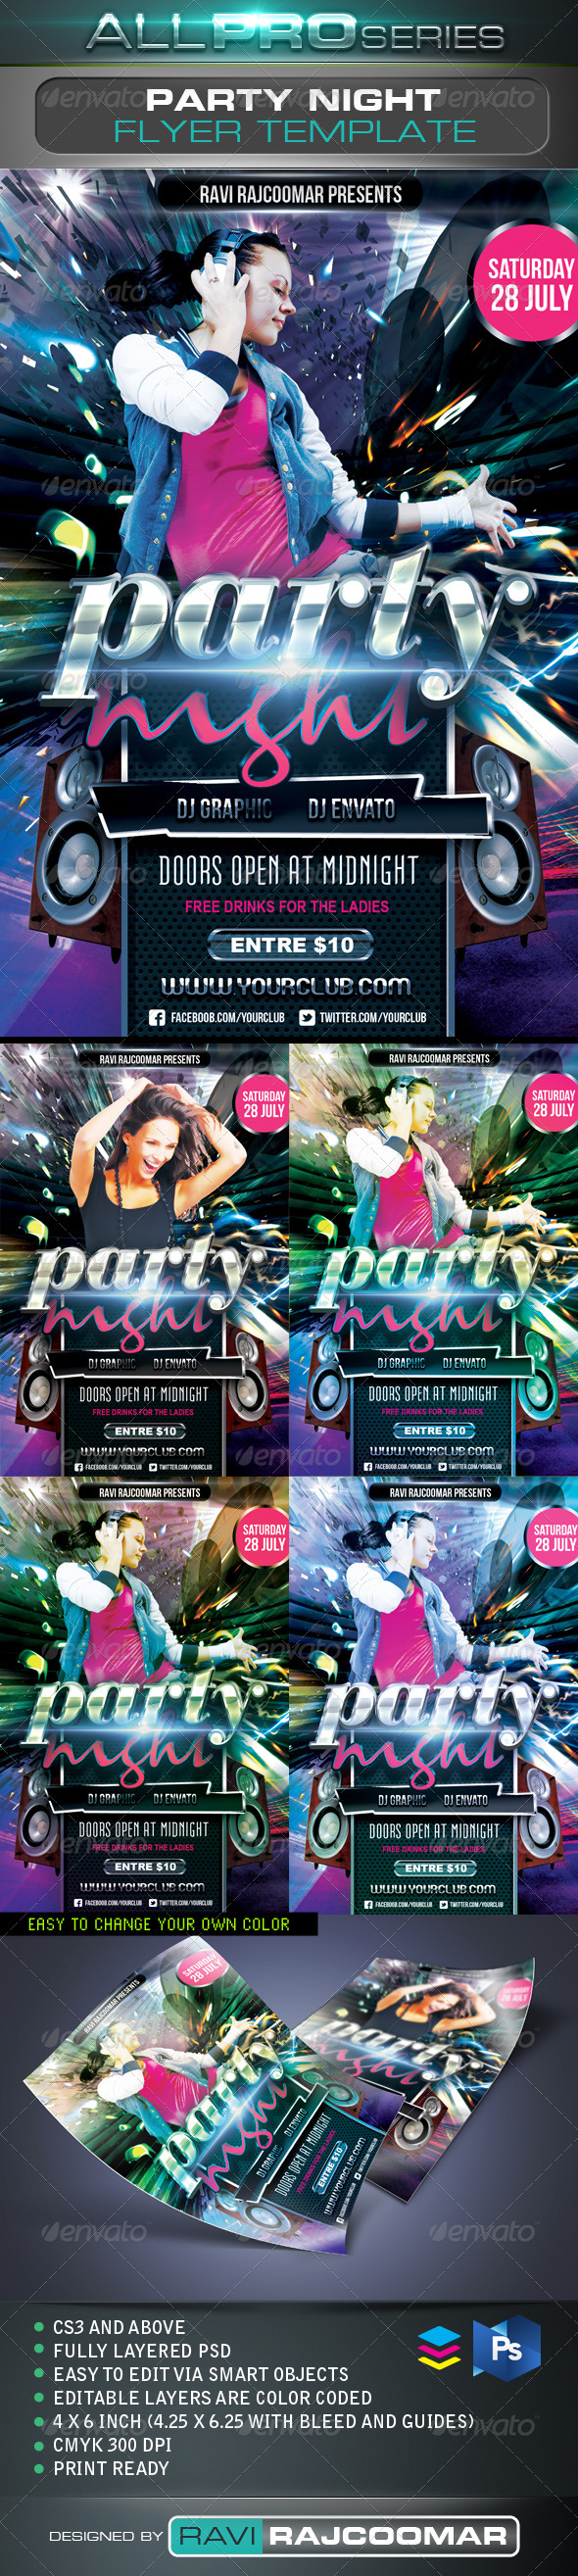 Party Night Flyer Template - Events Flyers